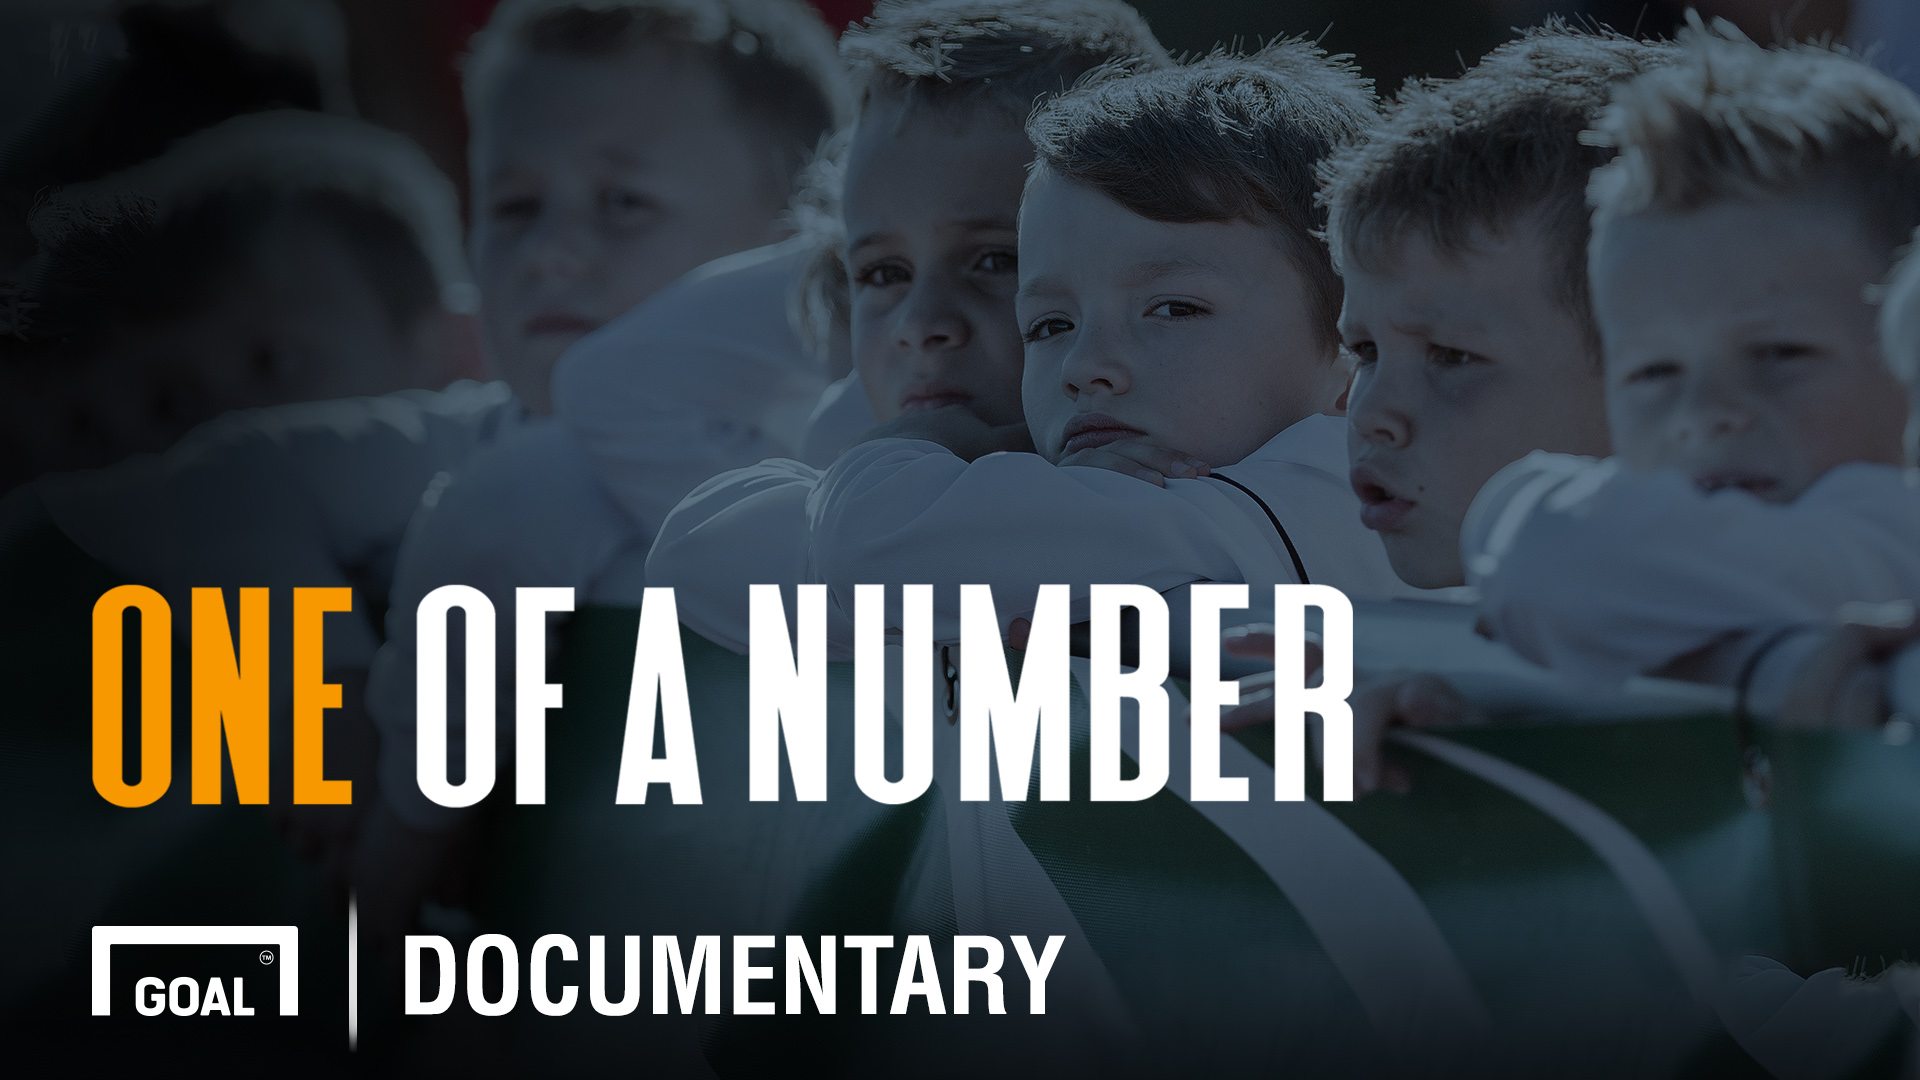 Video: One of a Number - a youth football documentary